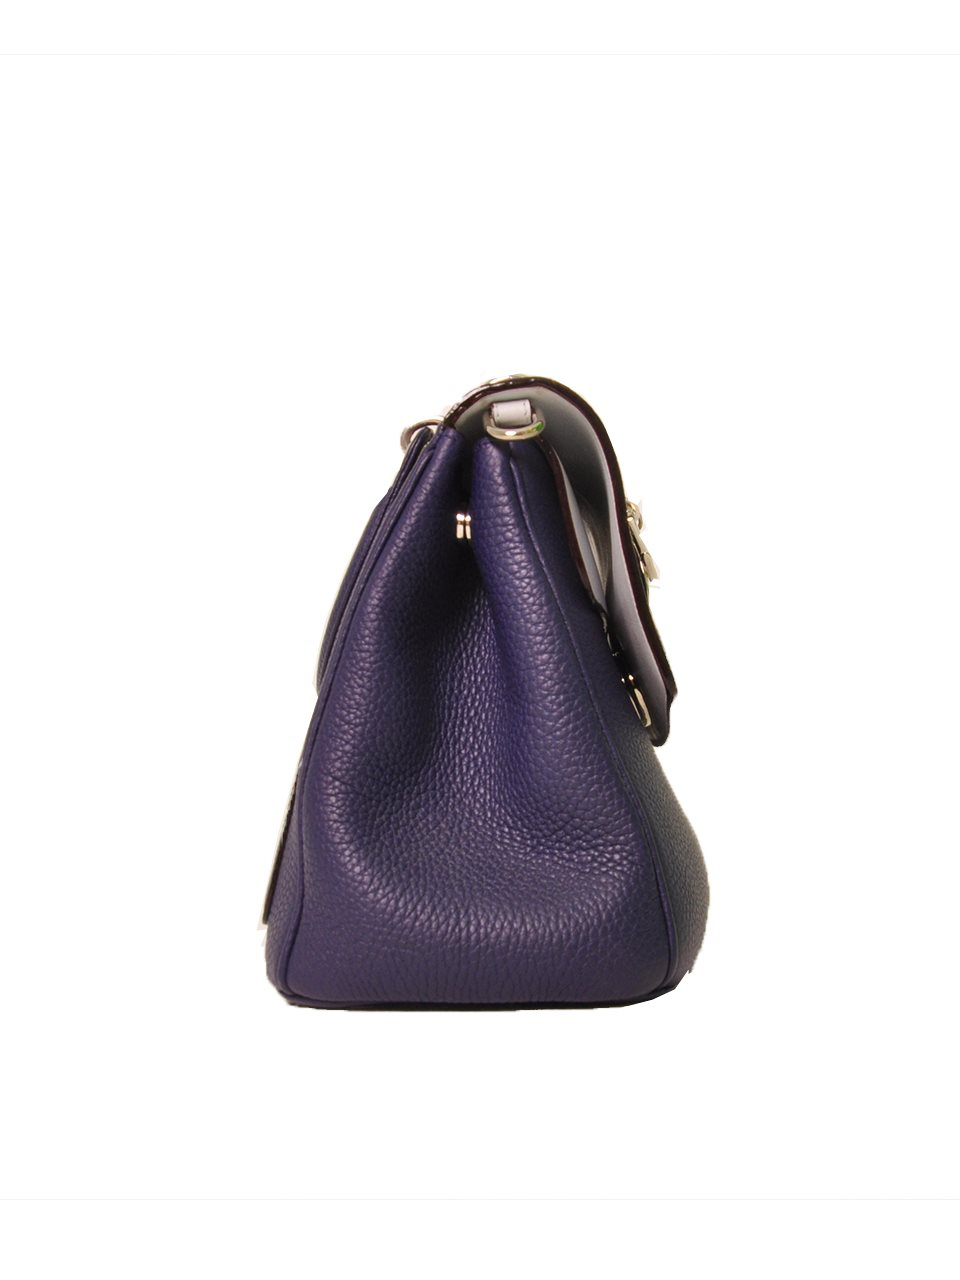 Christian Dior - Diorissimo Flap Medium Leather Hand Bag - Image 2 of 4